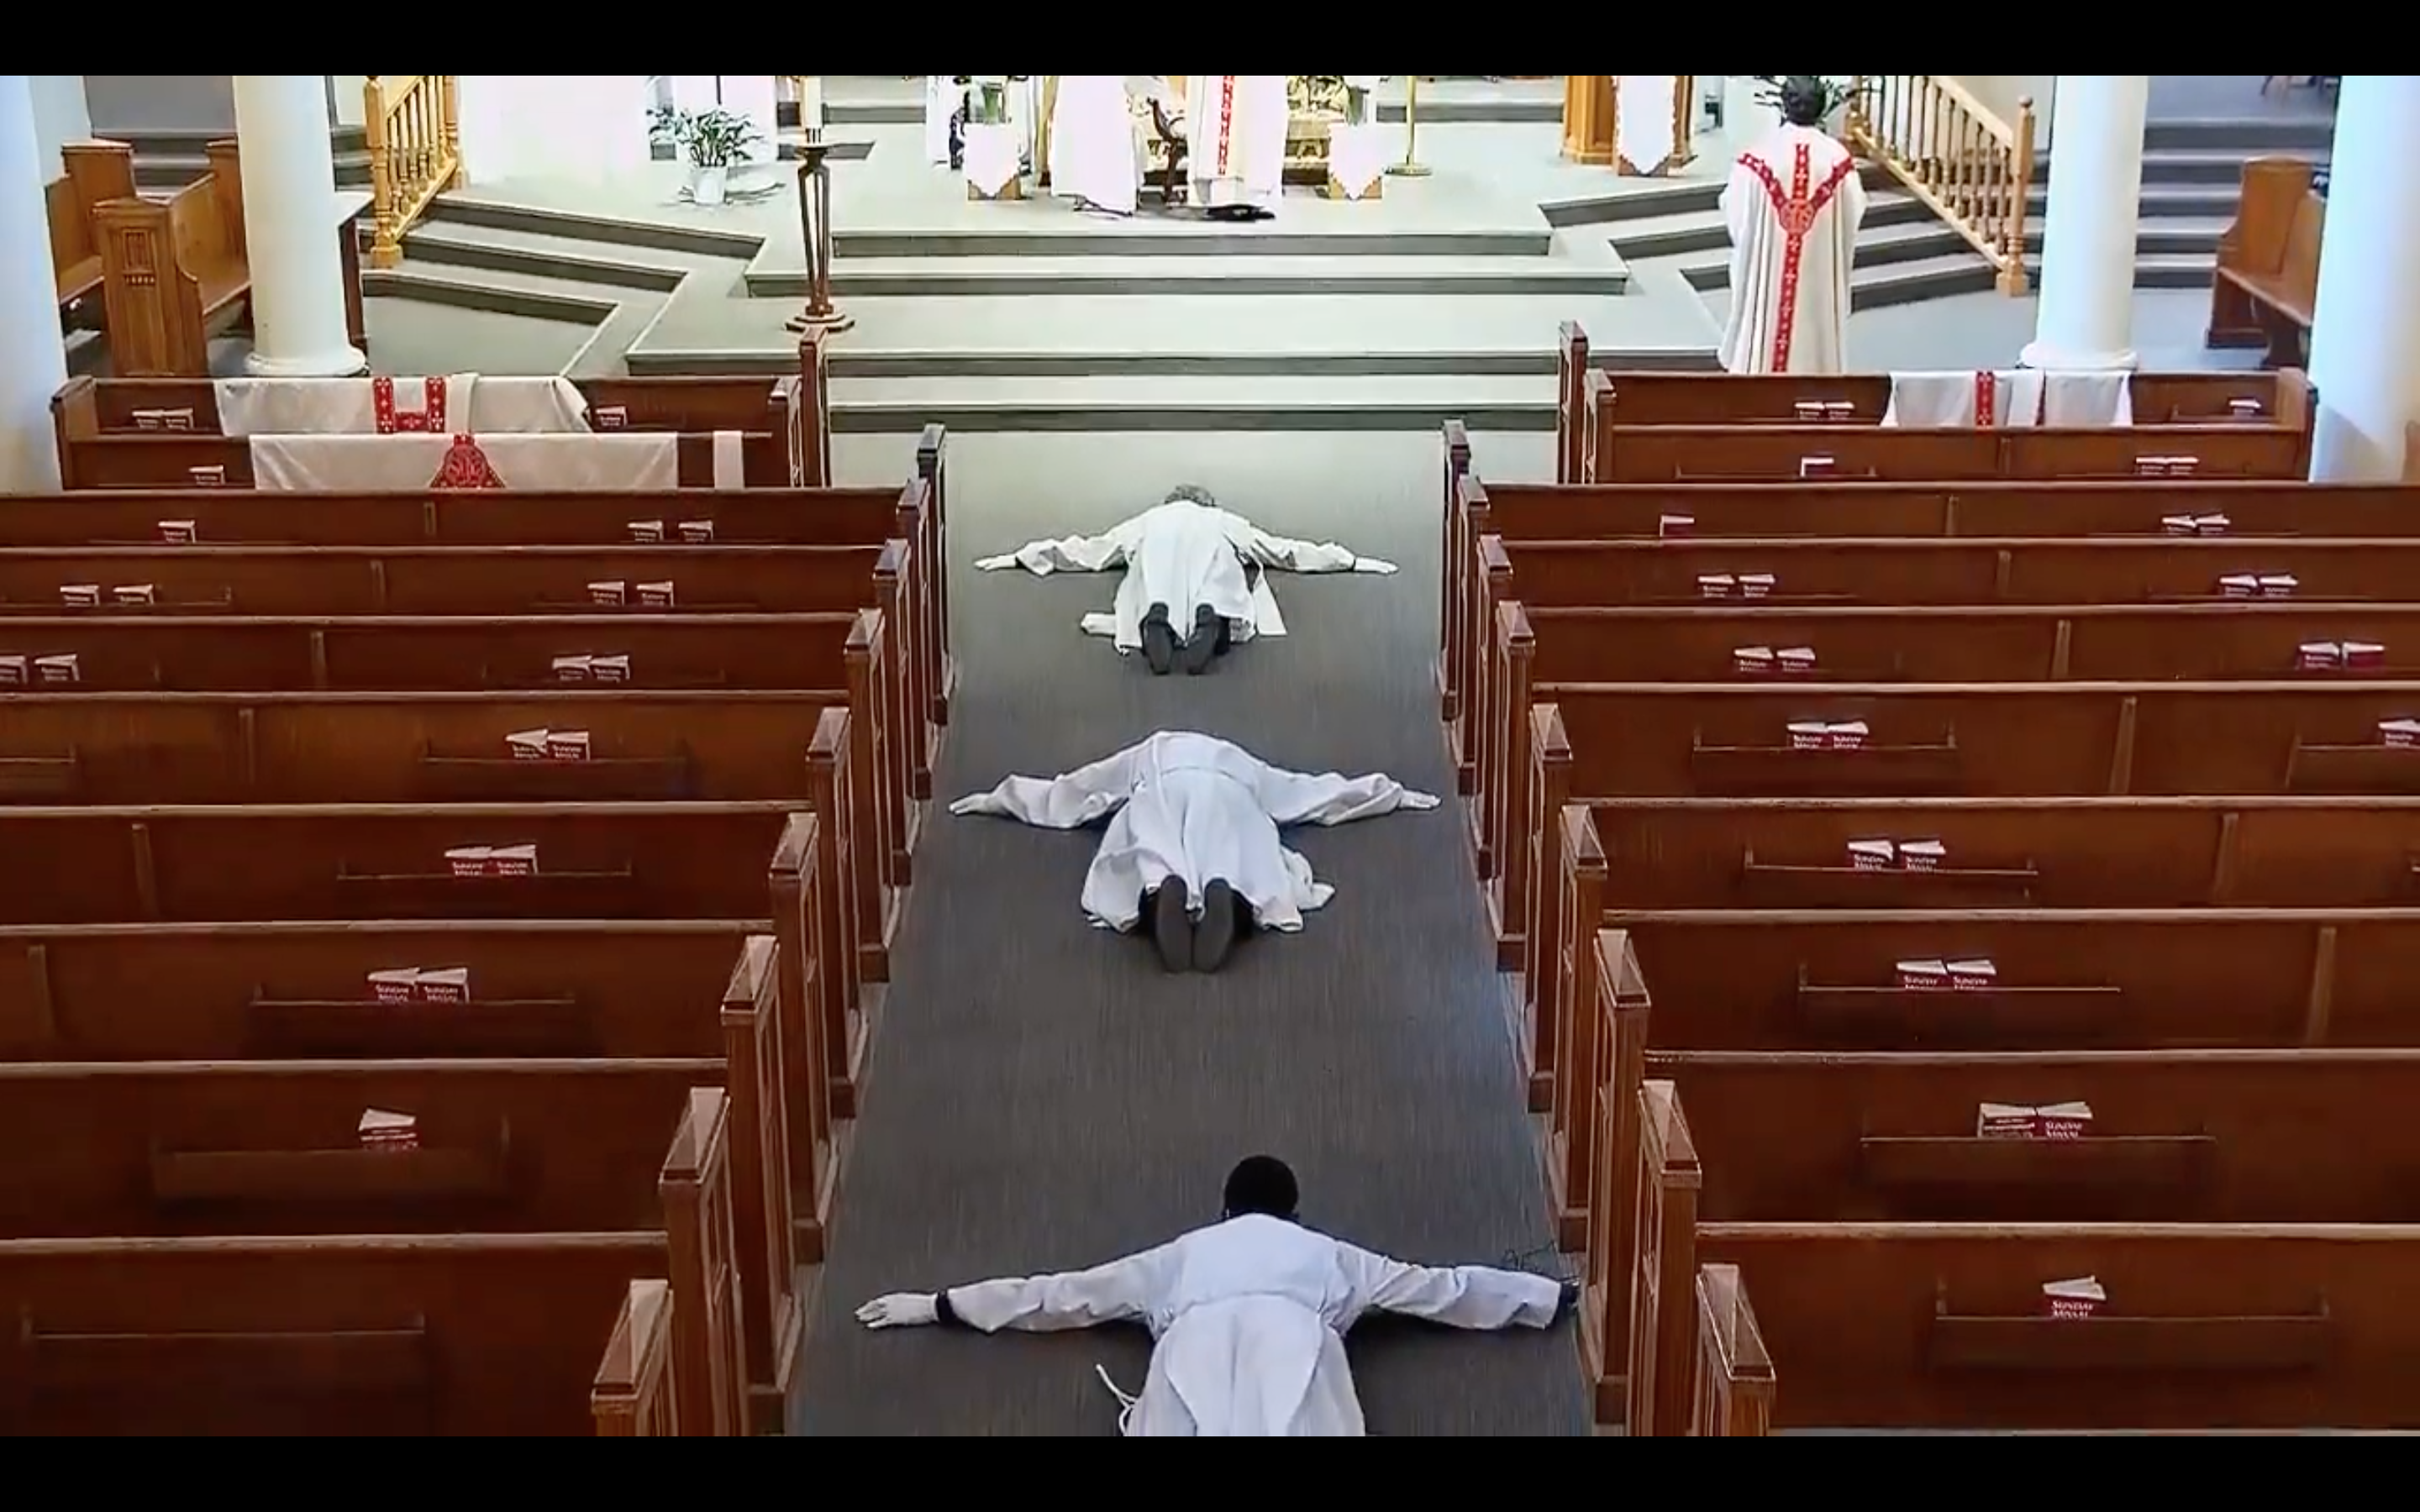 In an almost empty church, the ordinands prostrated on the ground while the Litany of the Saints was sung